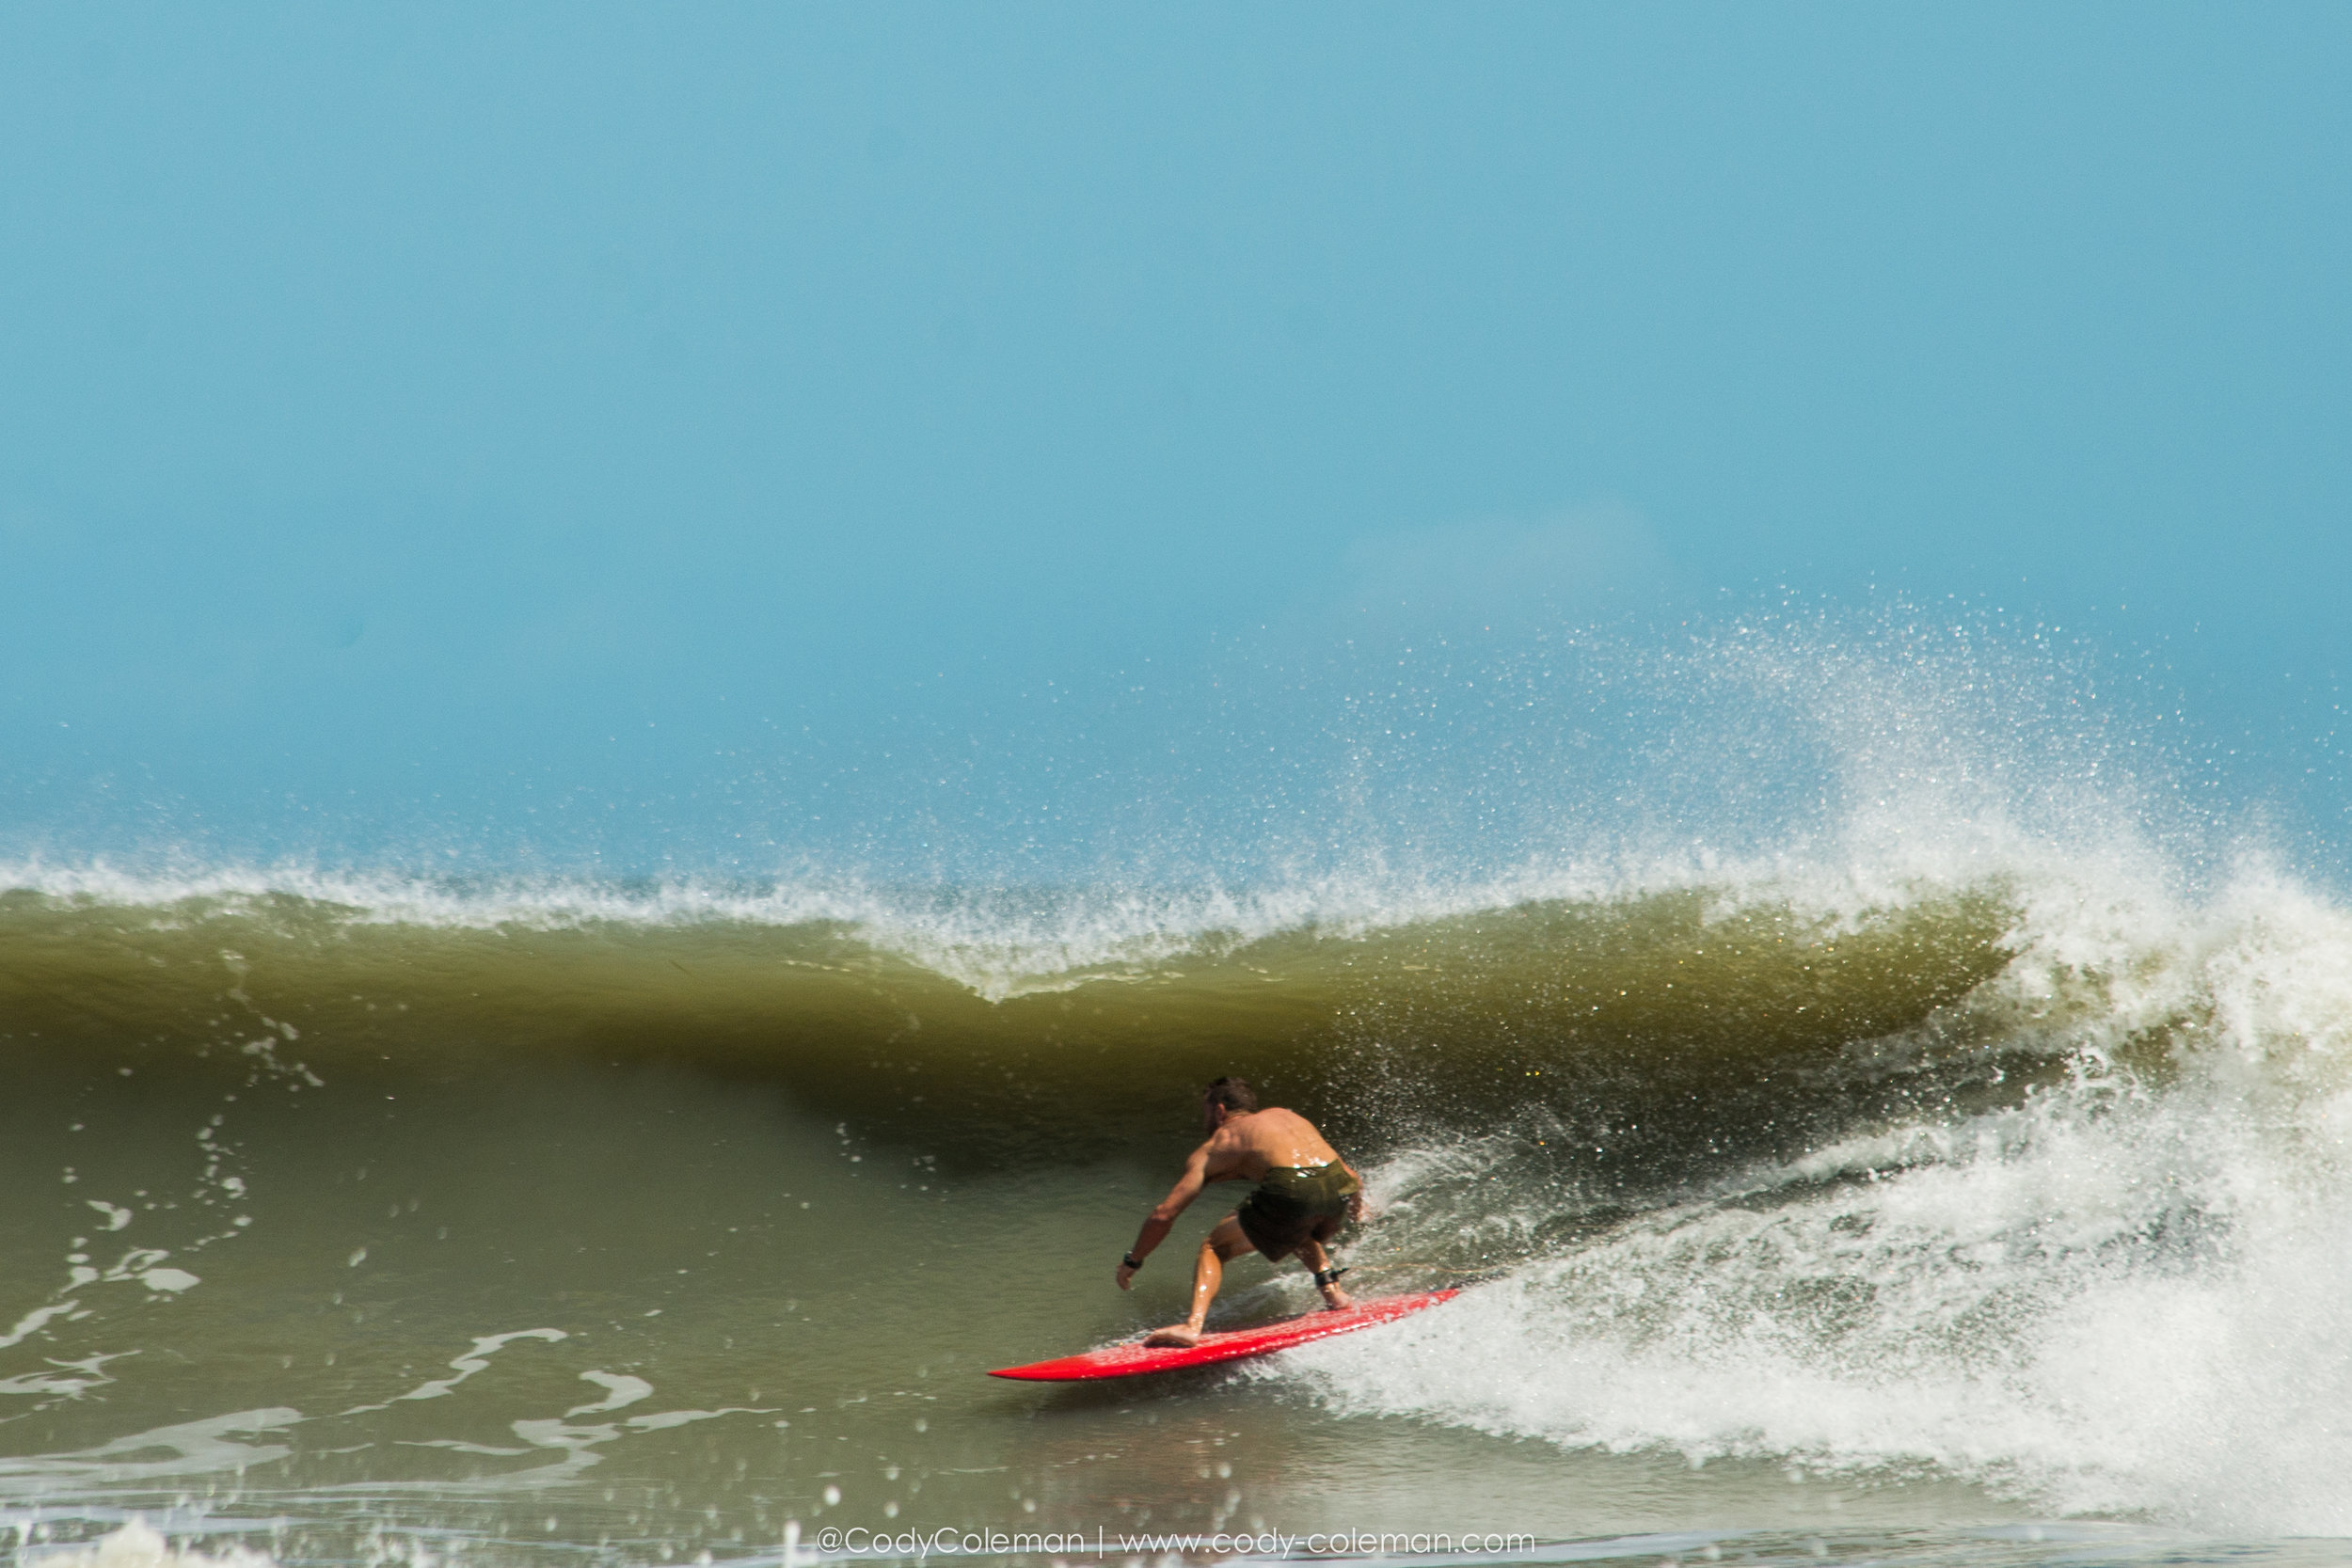 Eric Hires on his single fin absolutly charging.